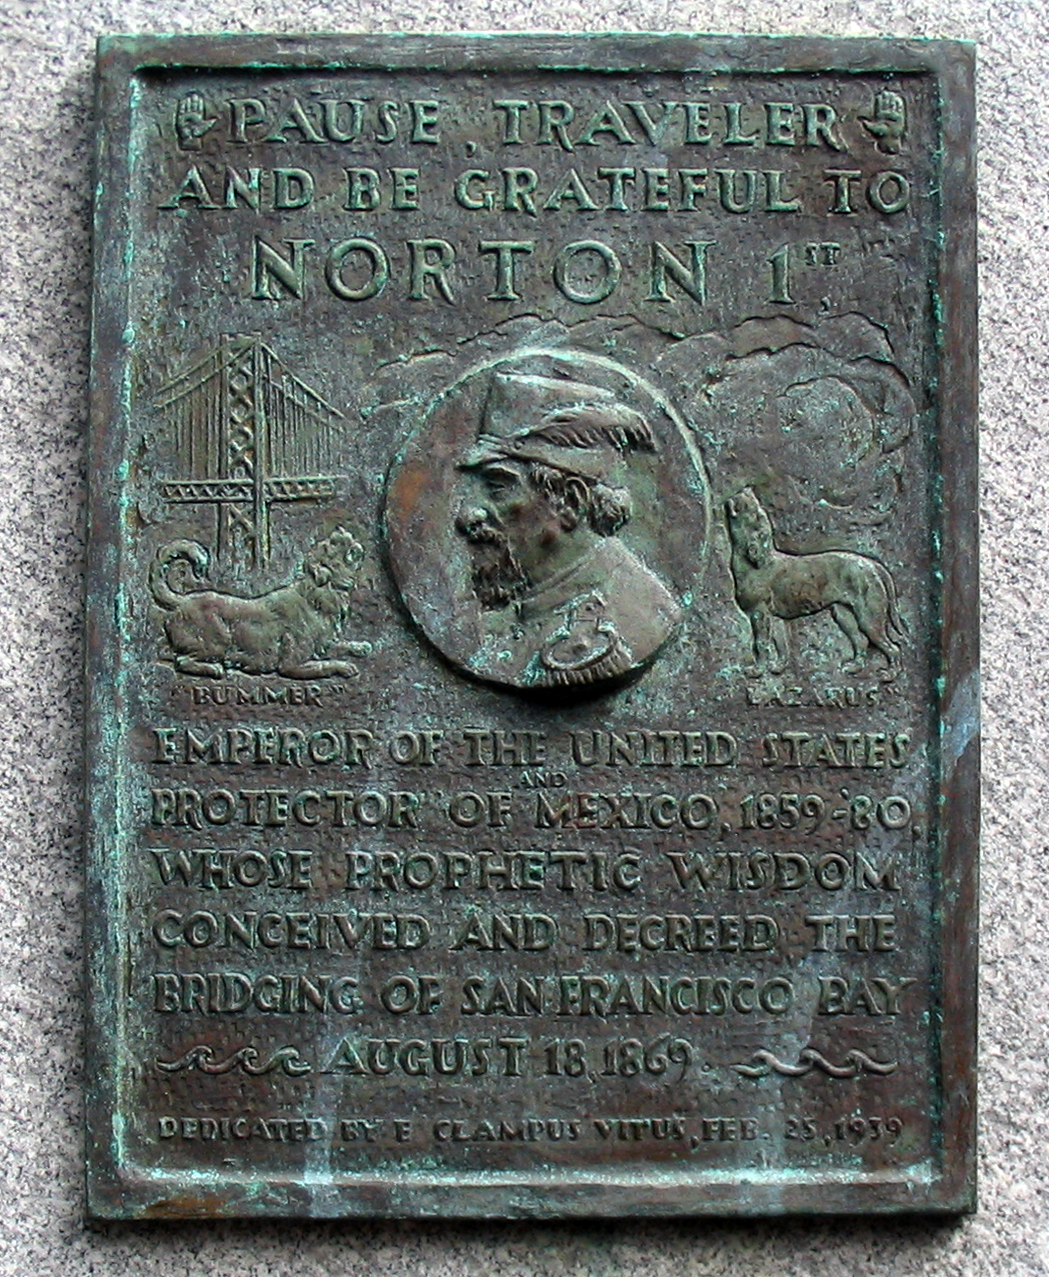 """Emperor Norton """"Pause Traveler"""" plaque (1939), commissioned by E Clampus Vitus to honor the Emperor for setting out the original vision for the San Francisco-Oakland Bay Bridge.  Photograph © 2010 John Nagle. Source:  Wikimedia Commons ."""